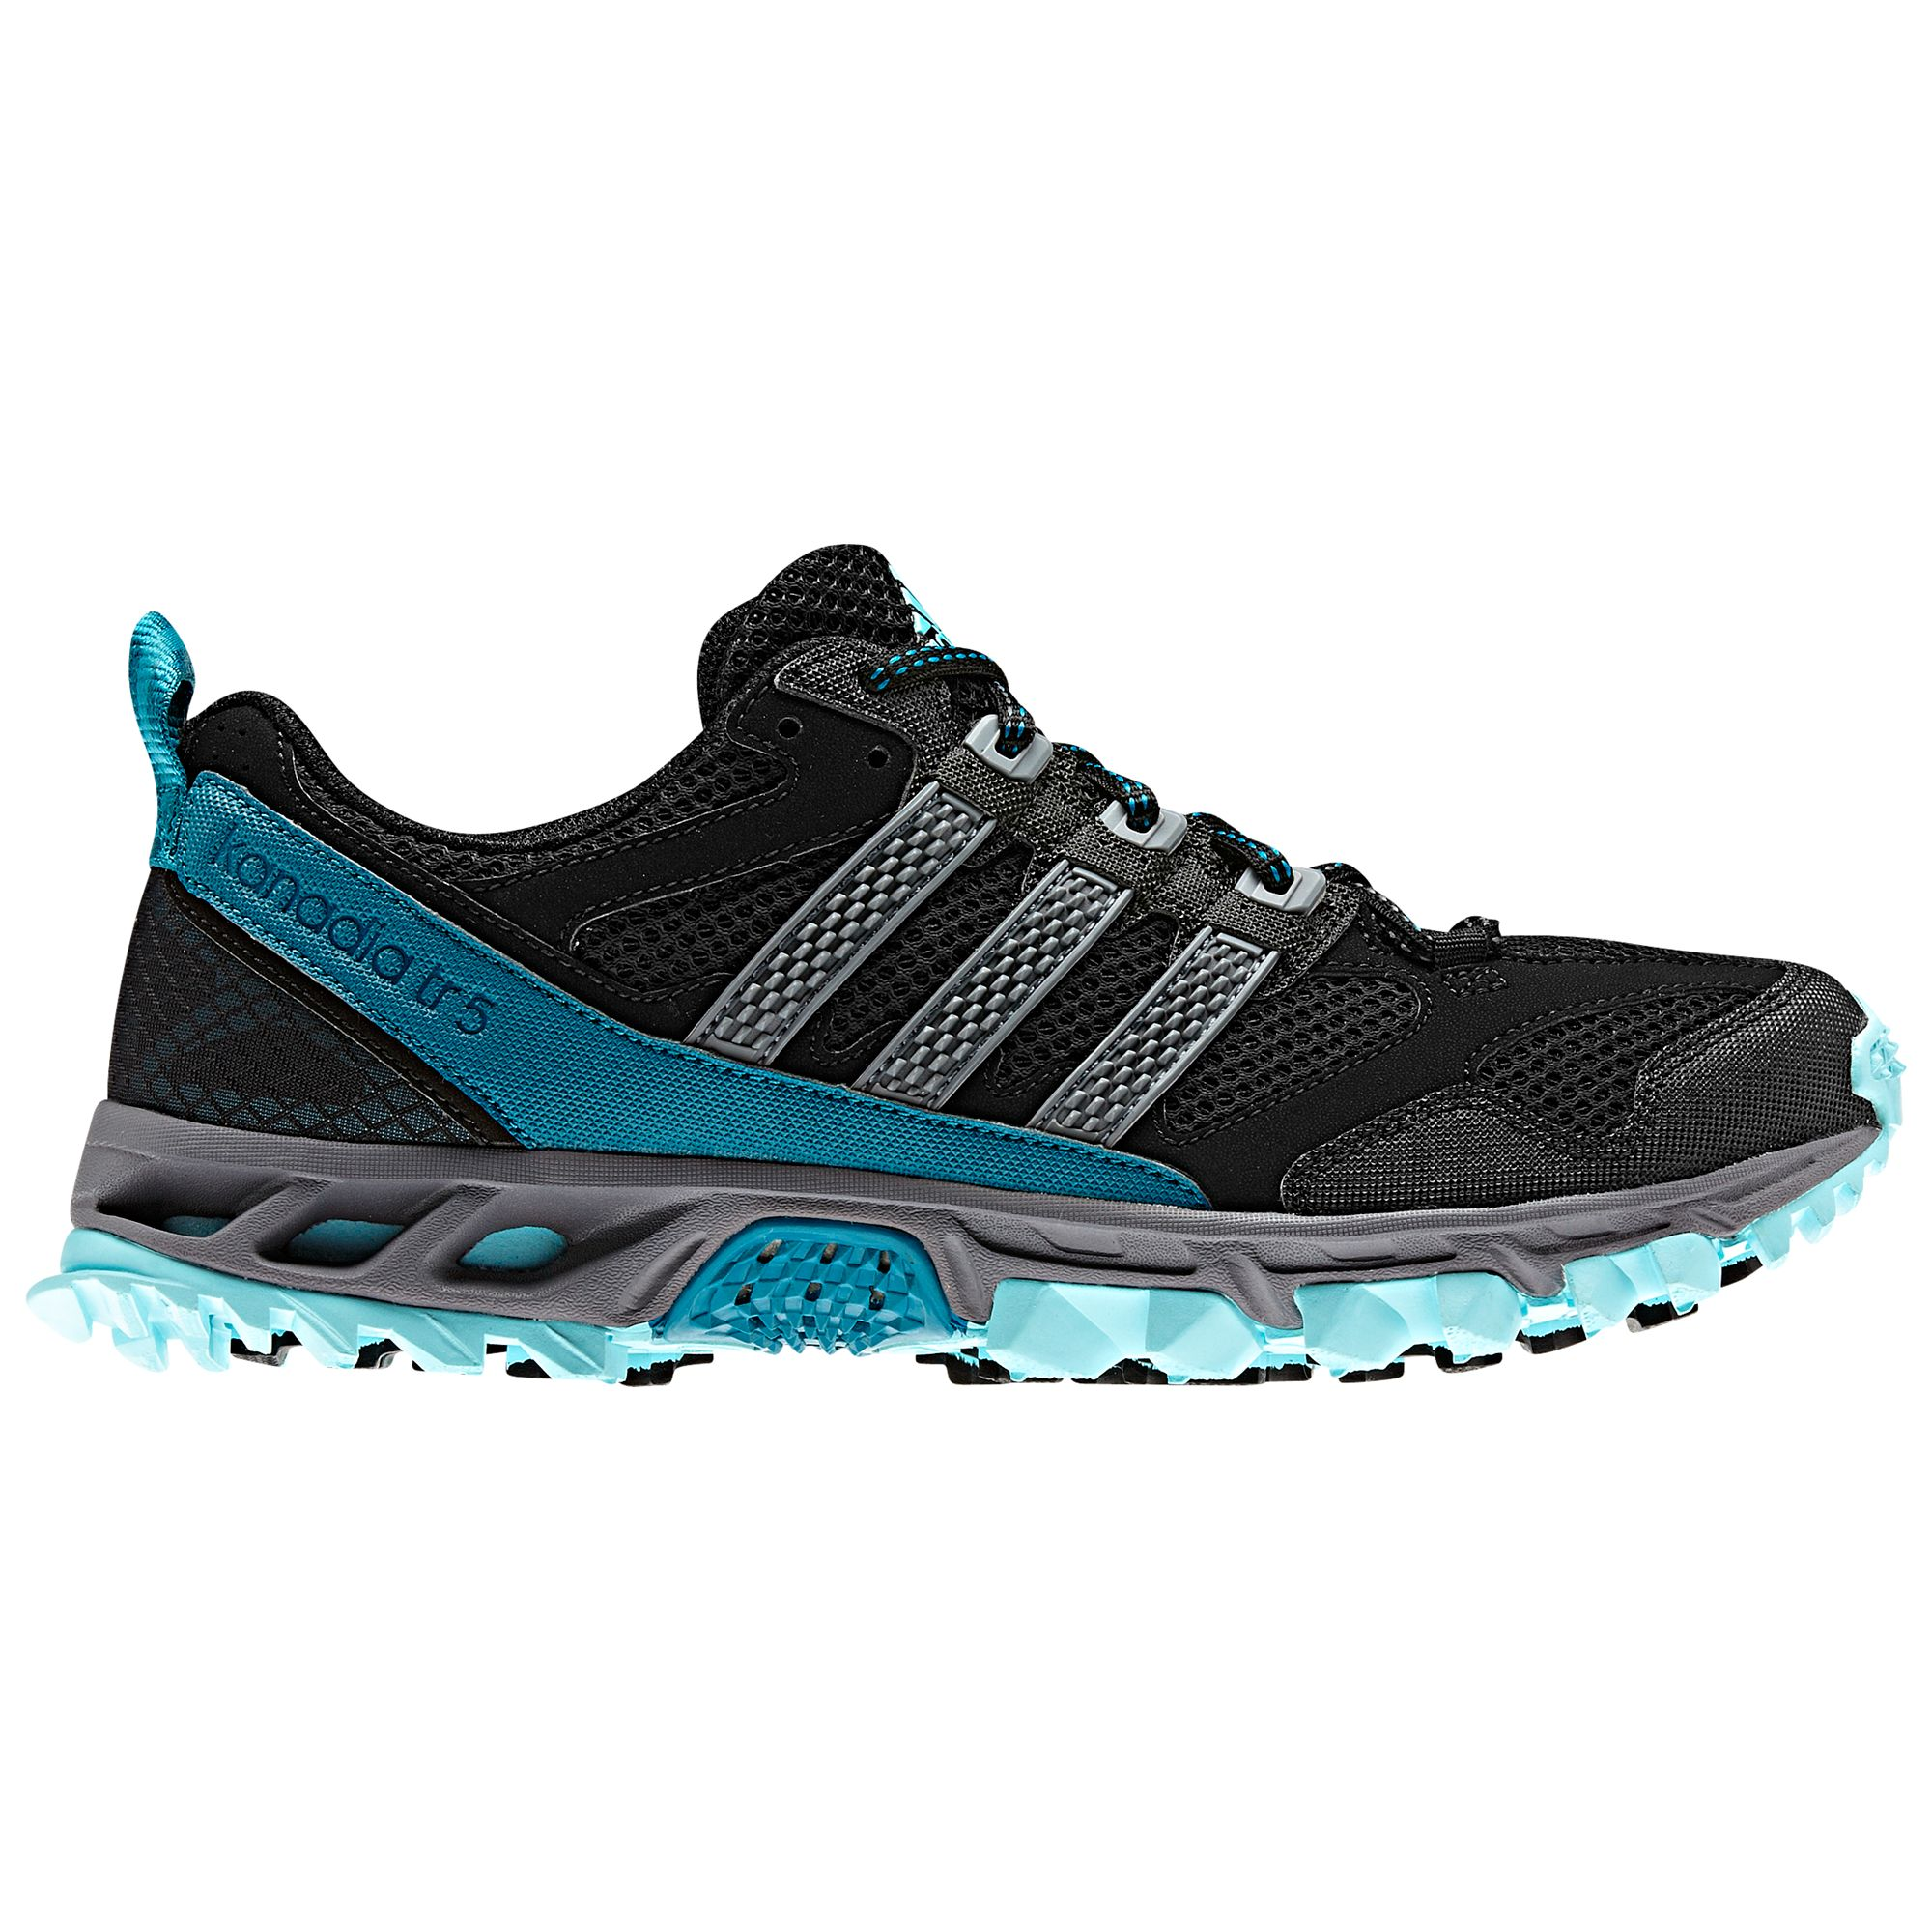 Adidas Kanadia 5 Running Shoes, Black/Grey/Blue